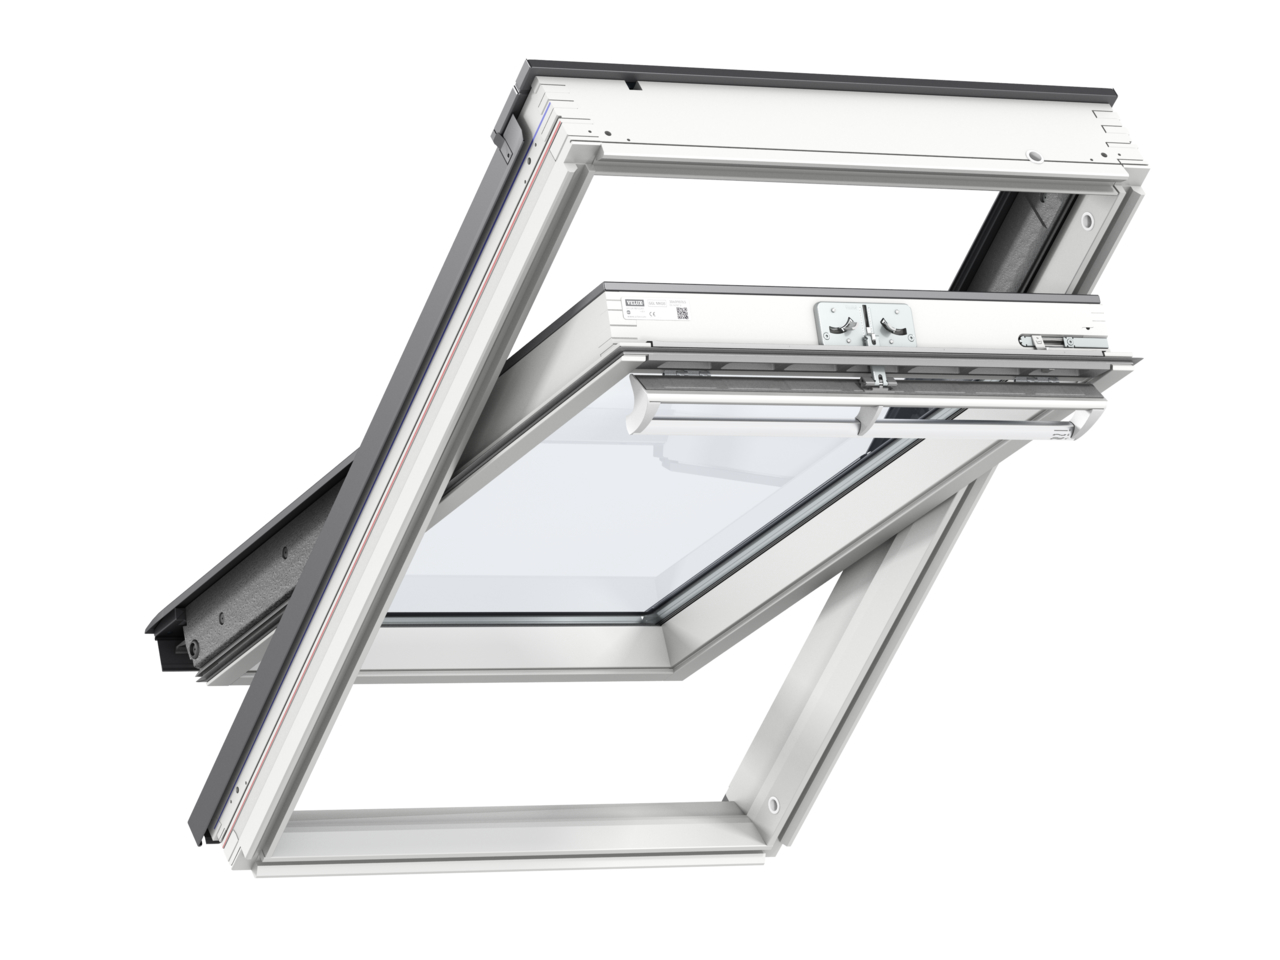 Velux GGL CK02 550 x 780mm Centre Pivot Standard 70Pane Roof Window - White Painted